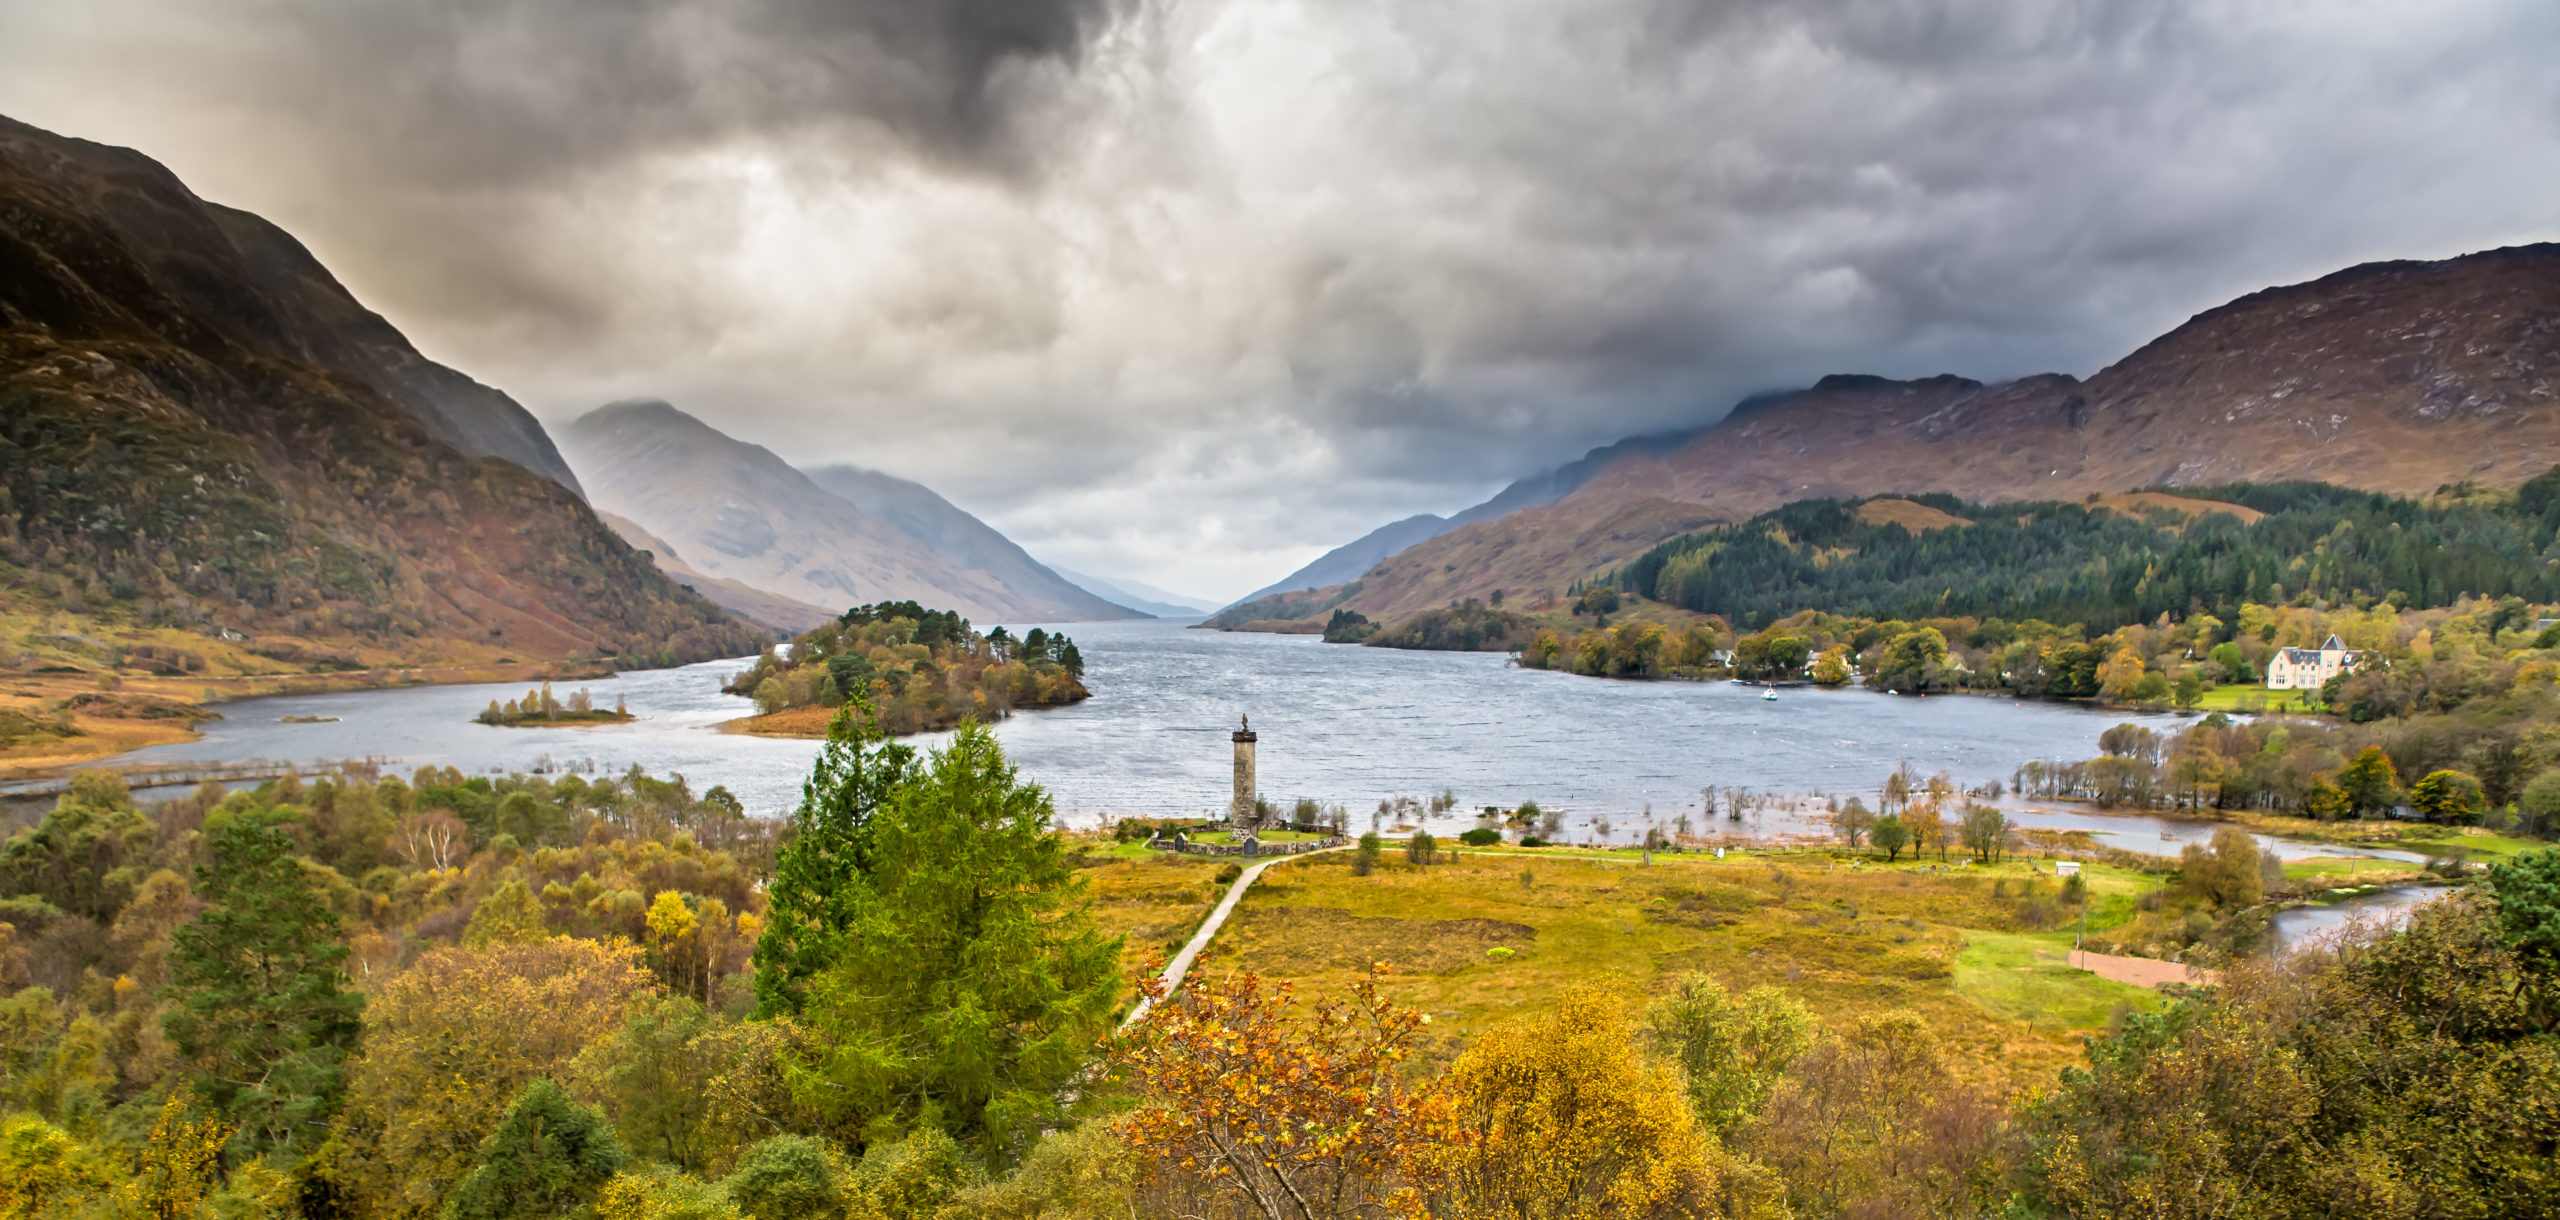 The Glenfinnan Monument at the head of Loch Shiel was built in 1815 and is linked to the slave trade in Jamaica